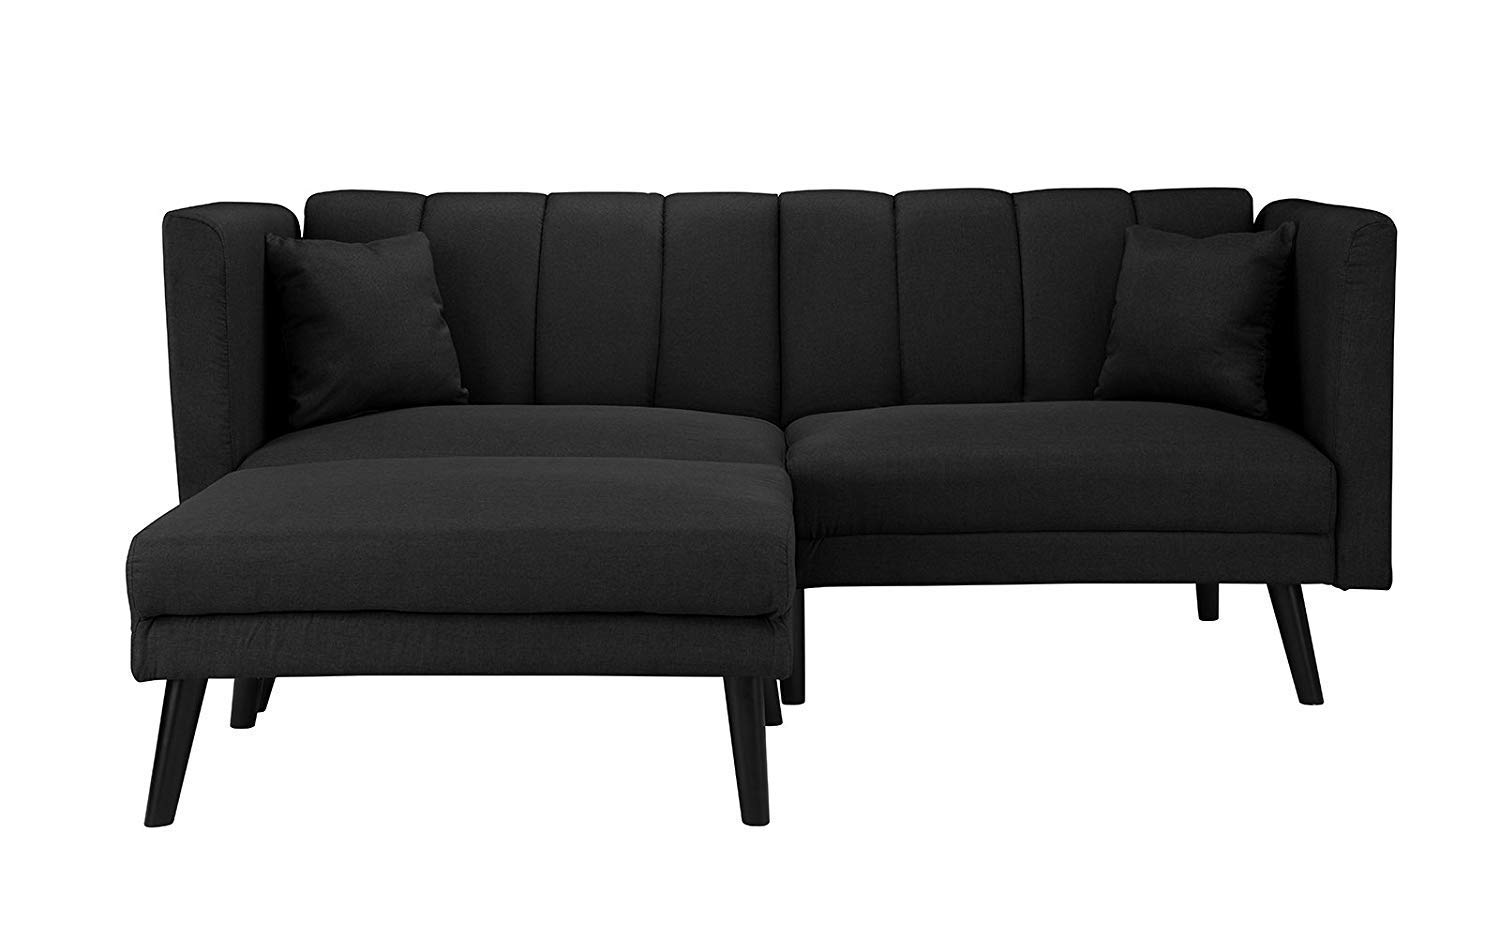 Modern Linen Fabric Futon Sofa Bed, Living Room Sleeper Couch Upholstered Soft Linen Fabric Over Hardwood Sofa Bed with Pillows (Black)